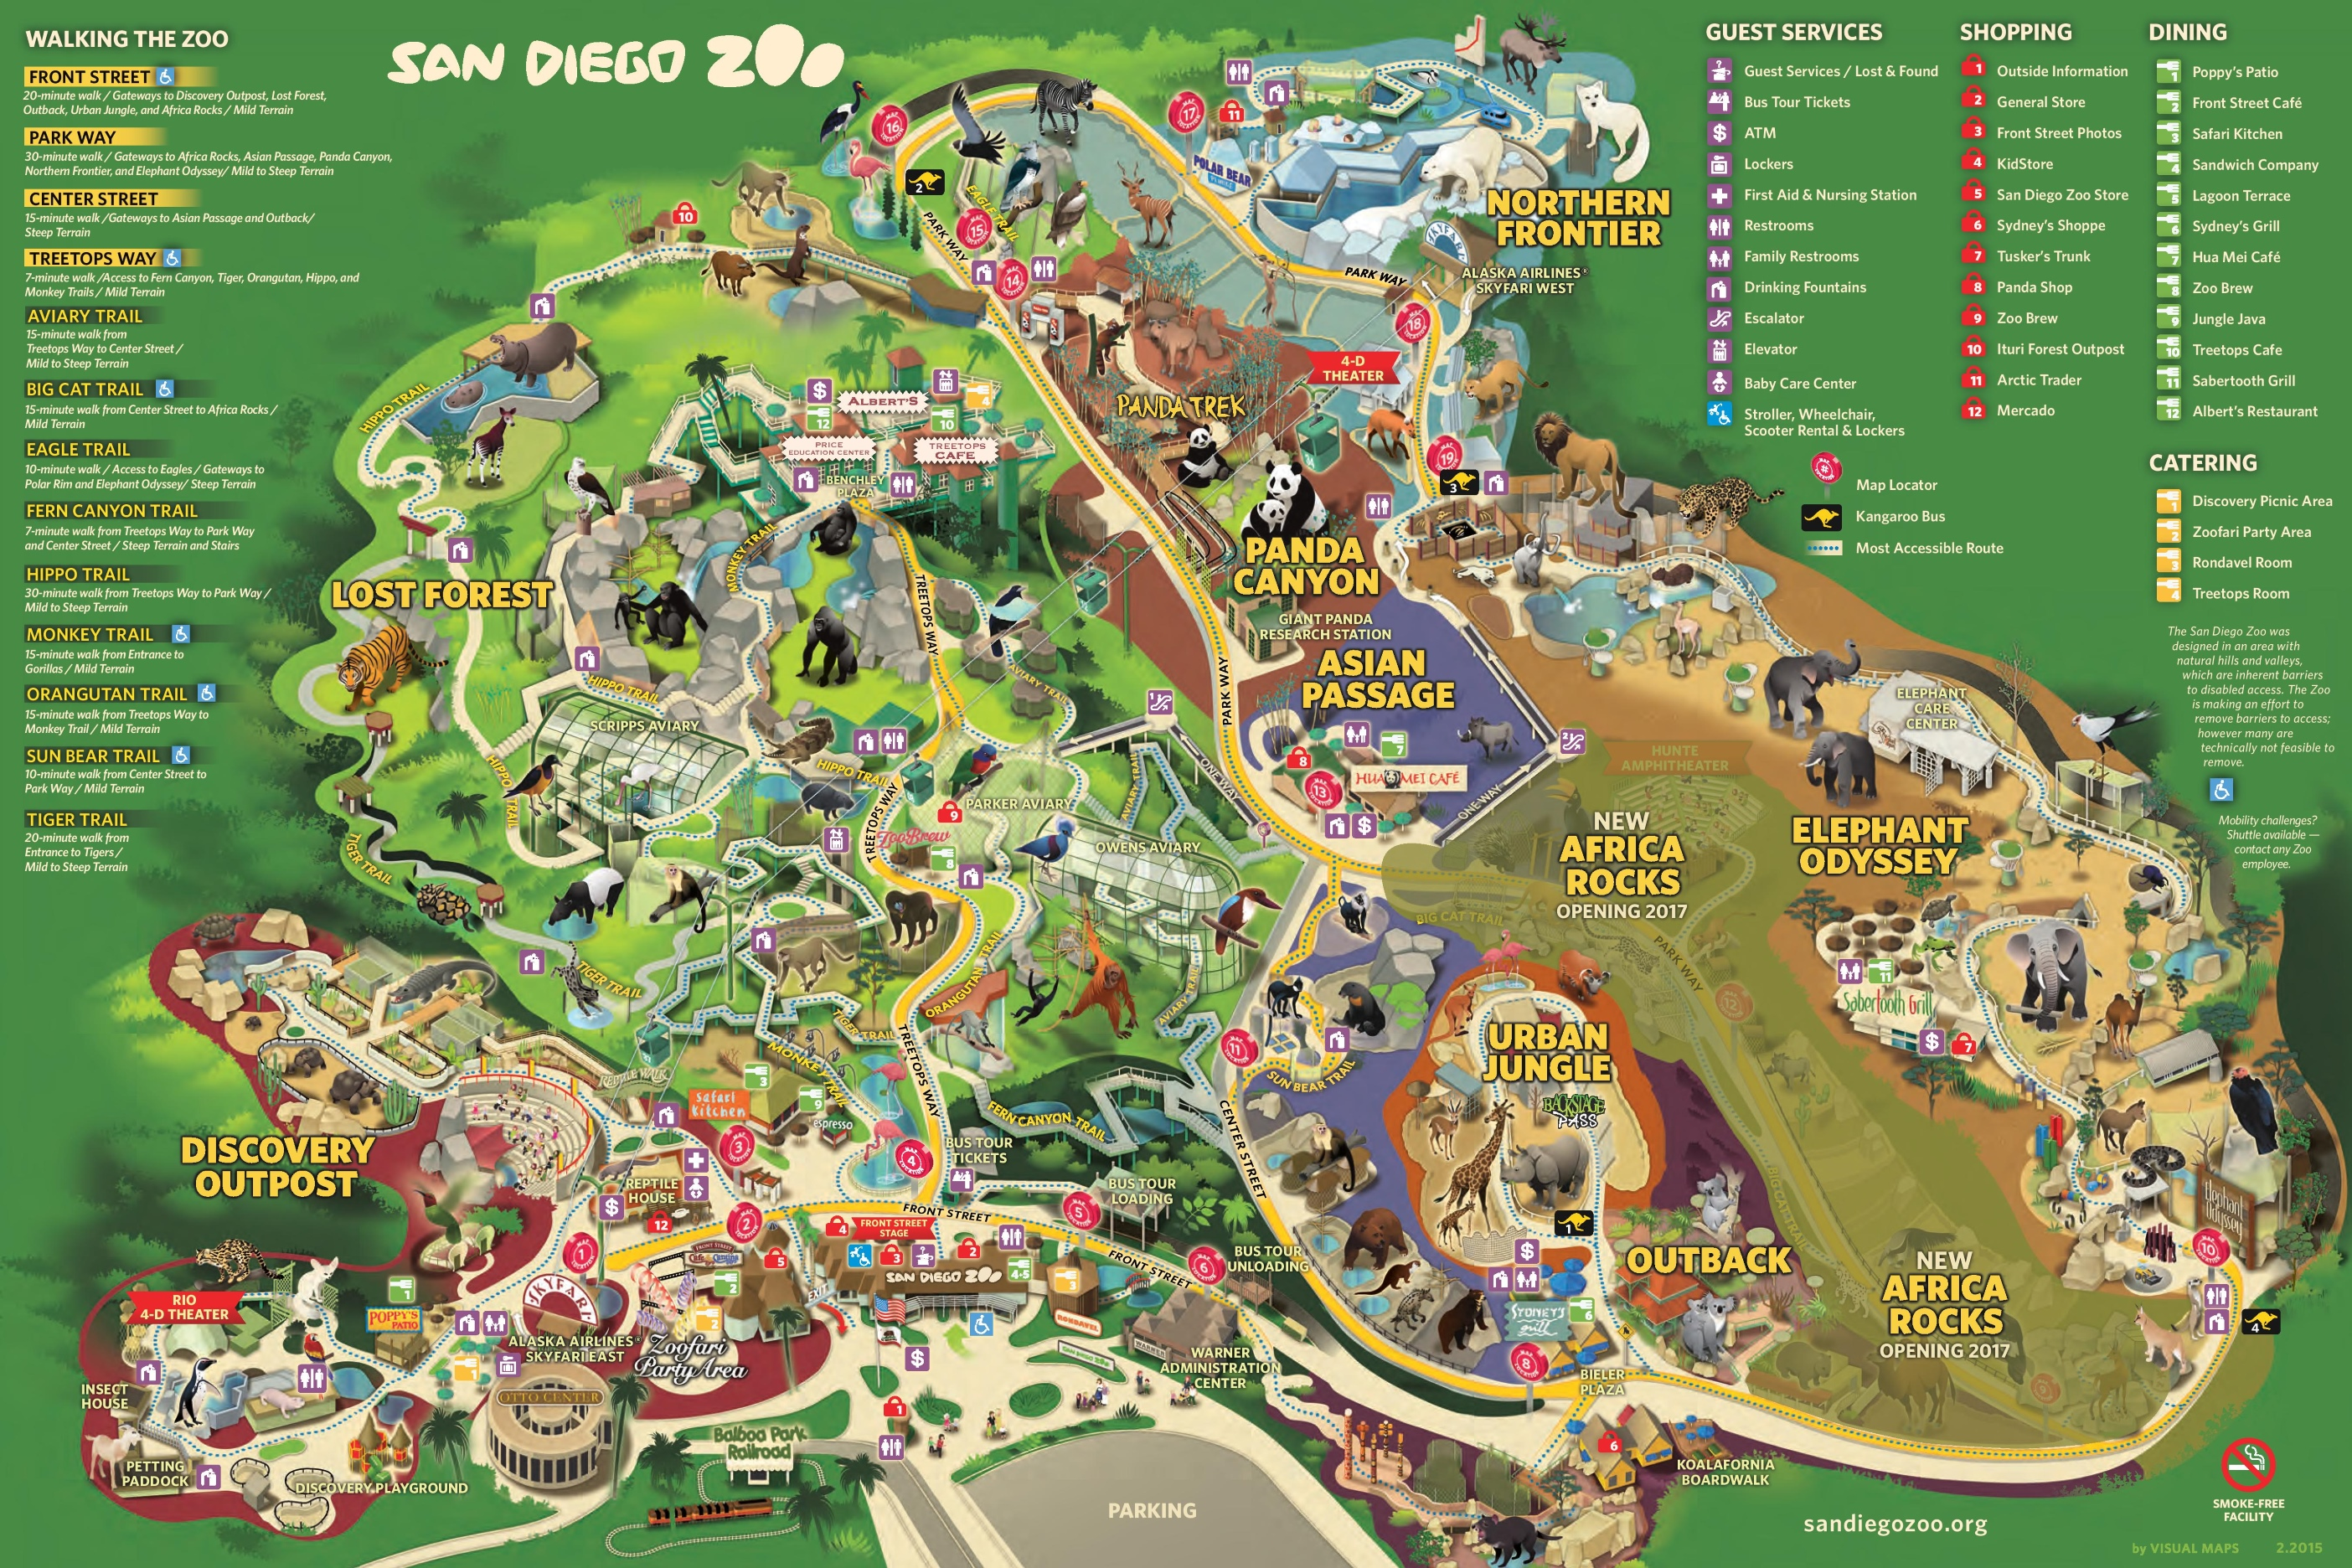 san diego zoo map